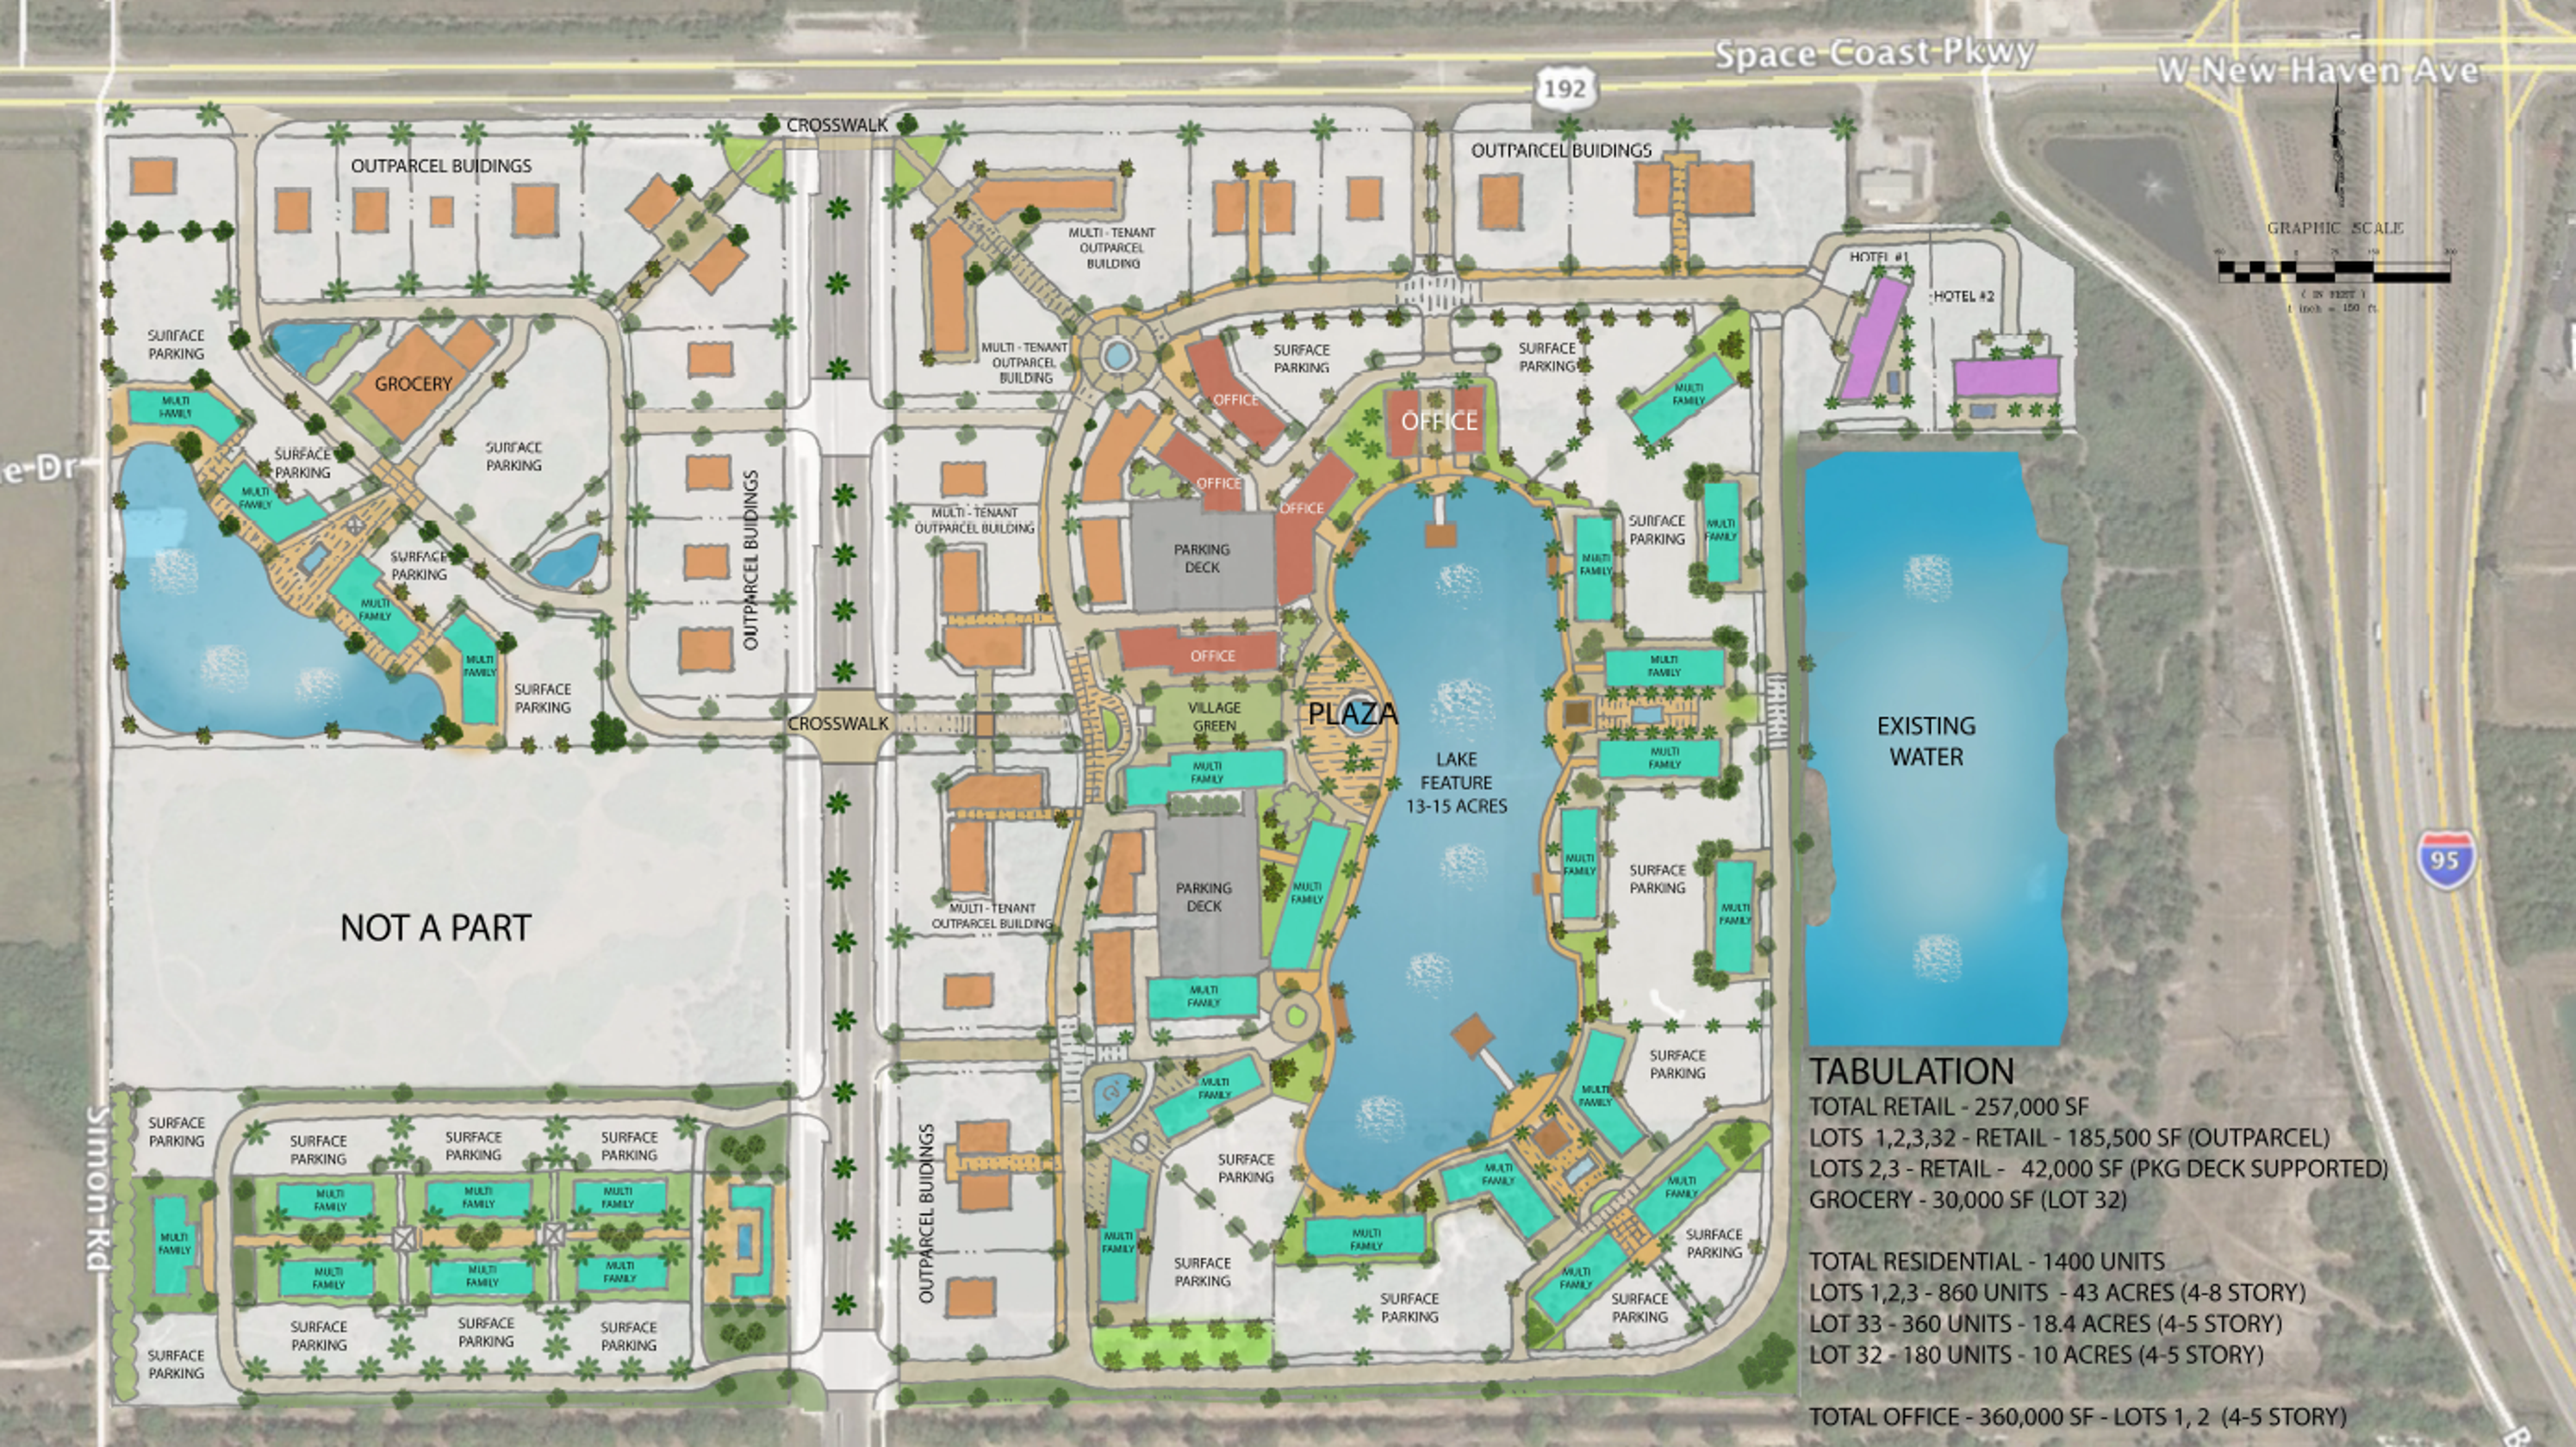 Mega Space Coast Town Center Planned In West Melbourne